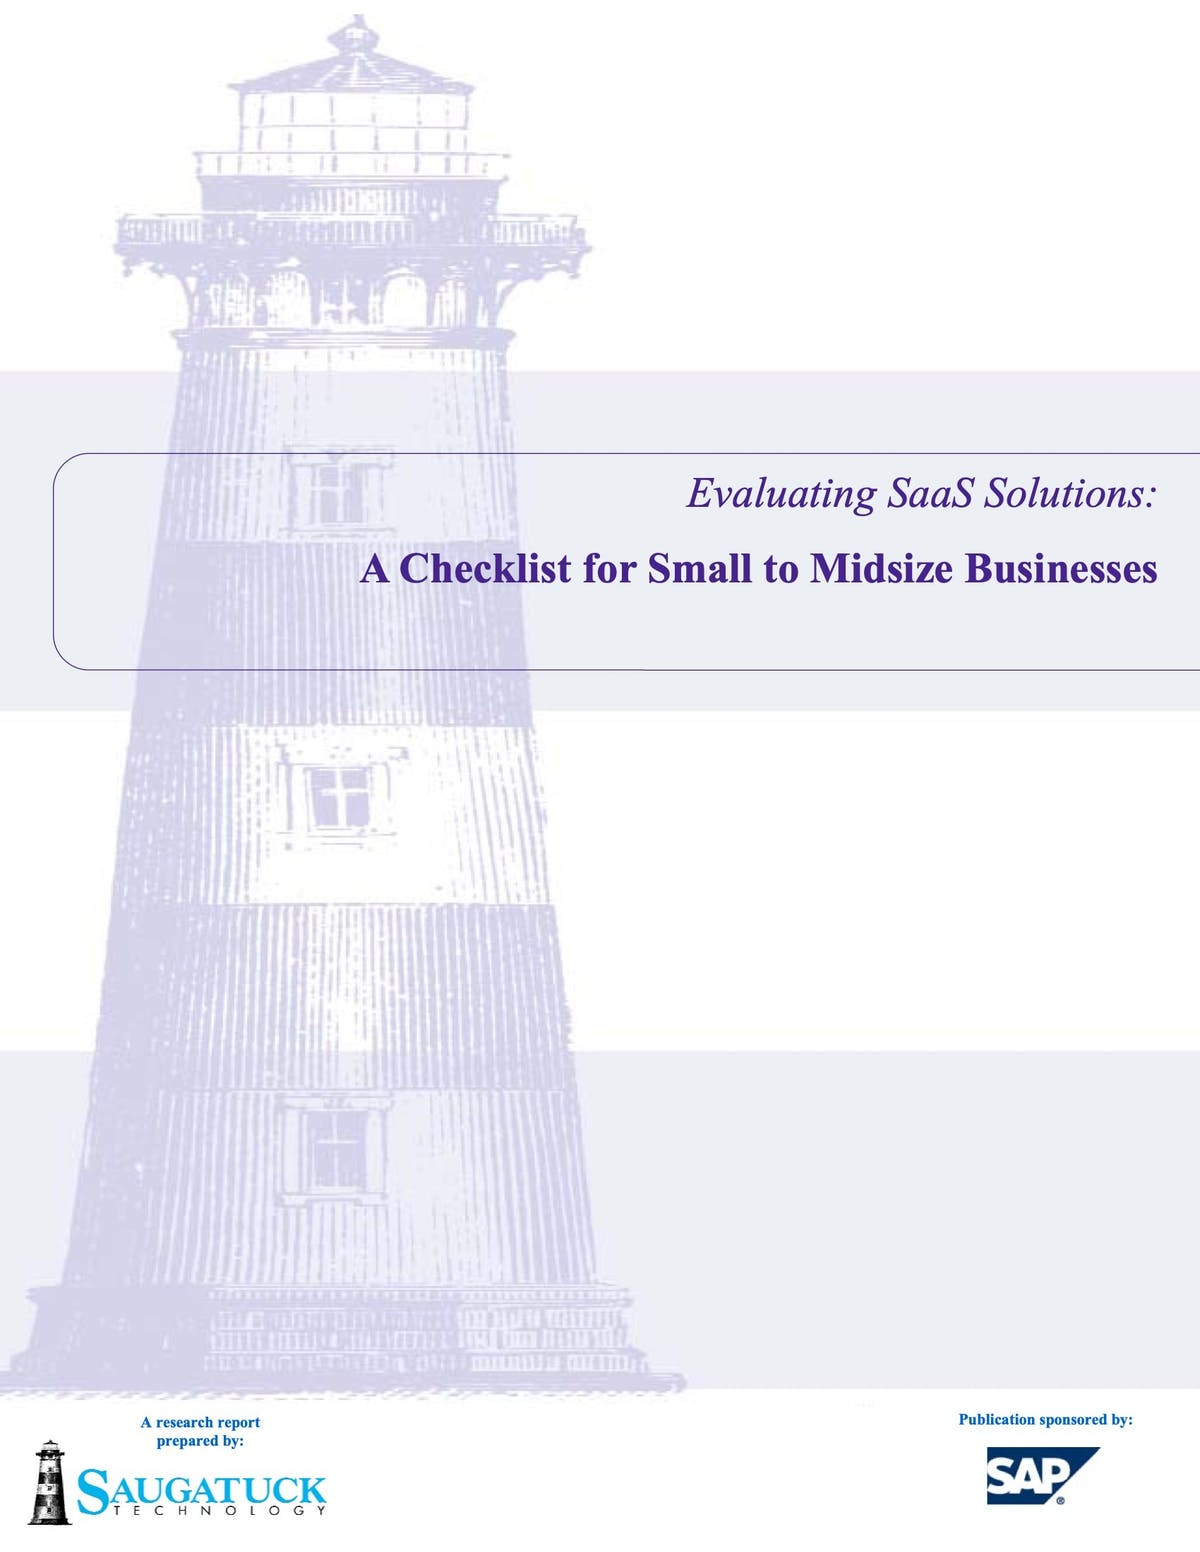 SAP Business ByDesign White Paper - Evaluating SaaS Solutions: A Checklist for Small to Midsize Businesses